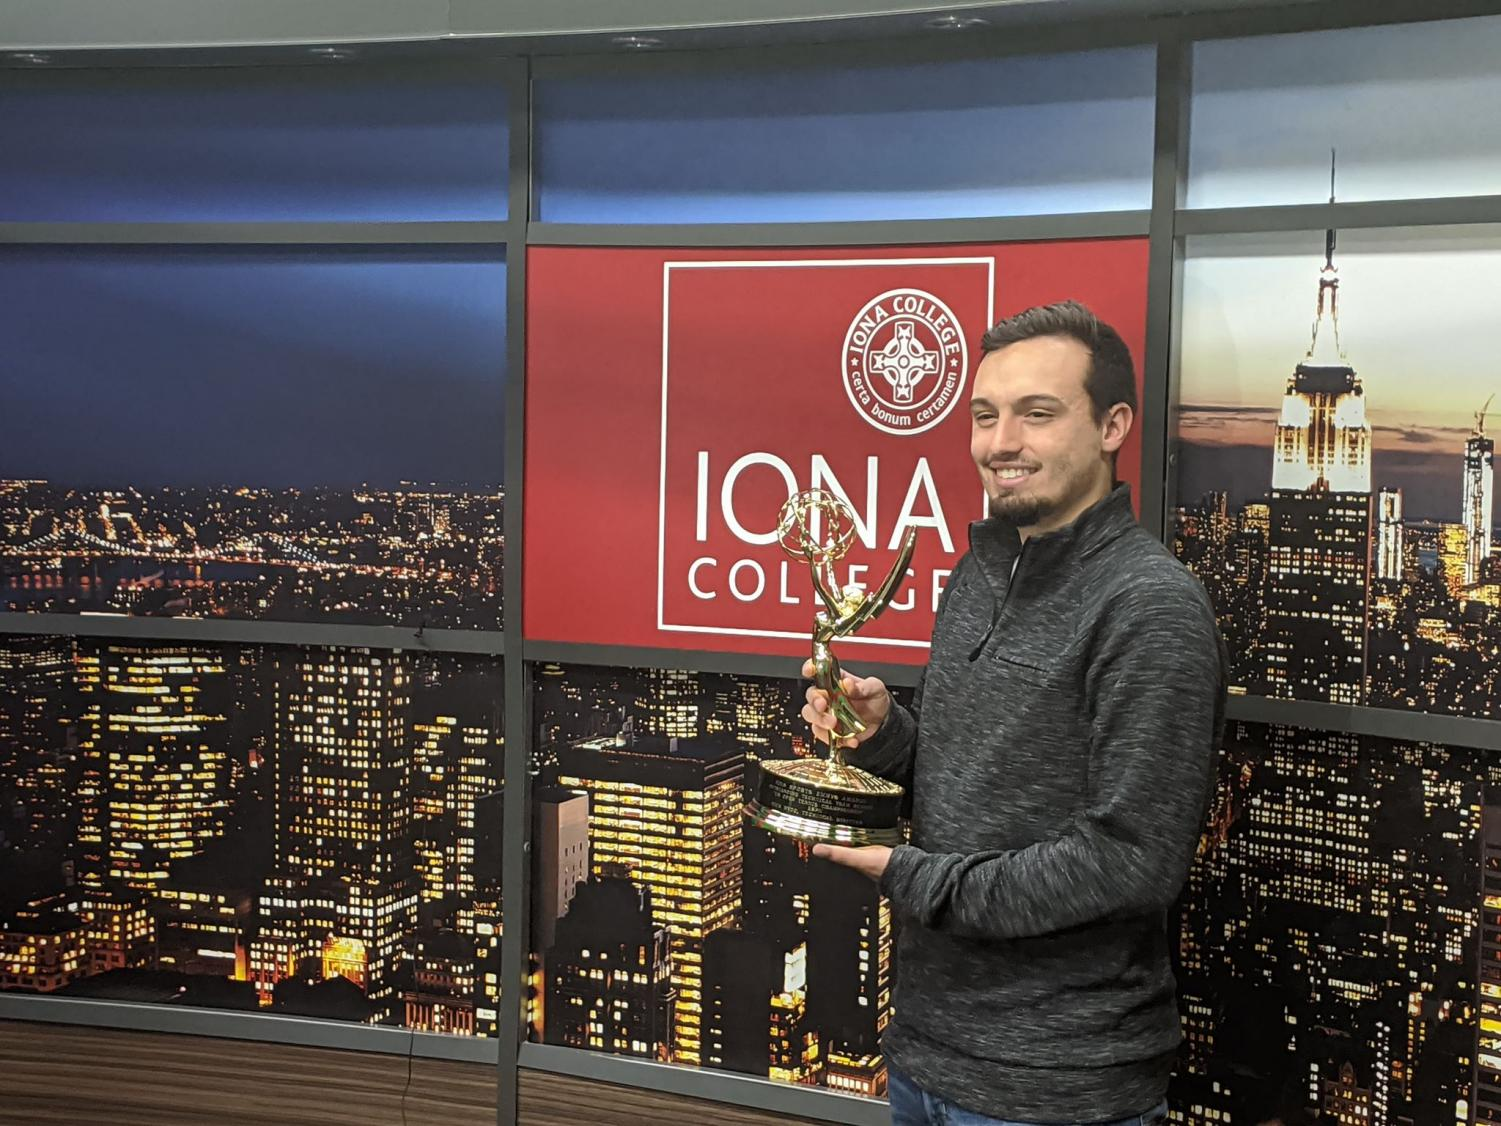 Iona alumnus Hydo, who graduated in 2018, has worked with MSG Network and ESPN.